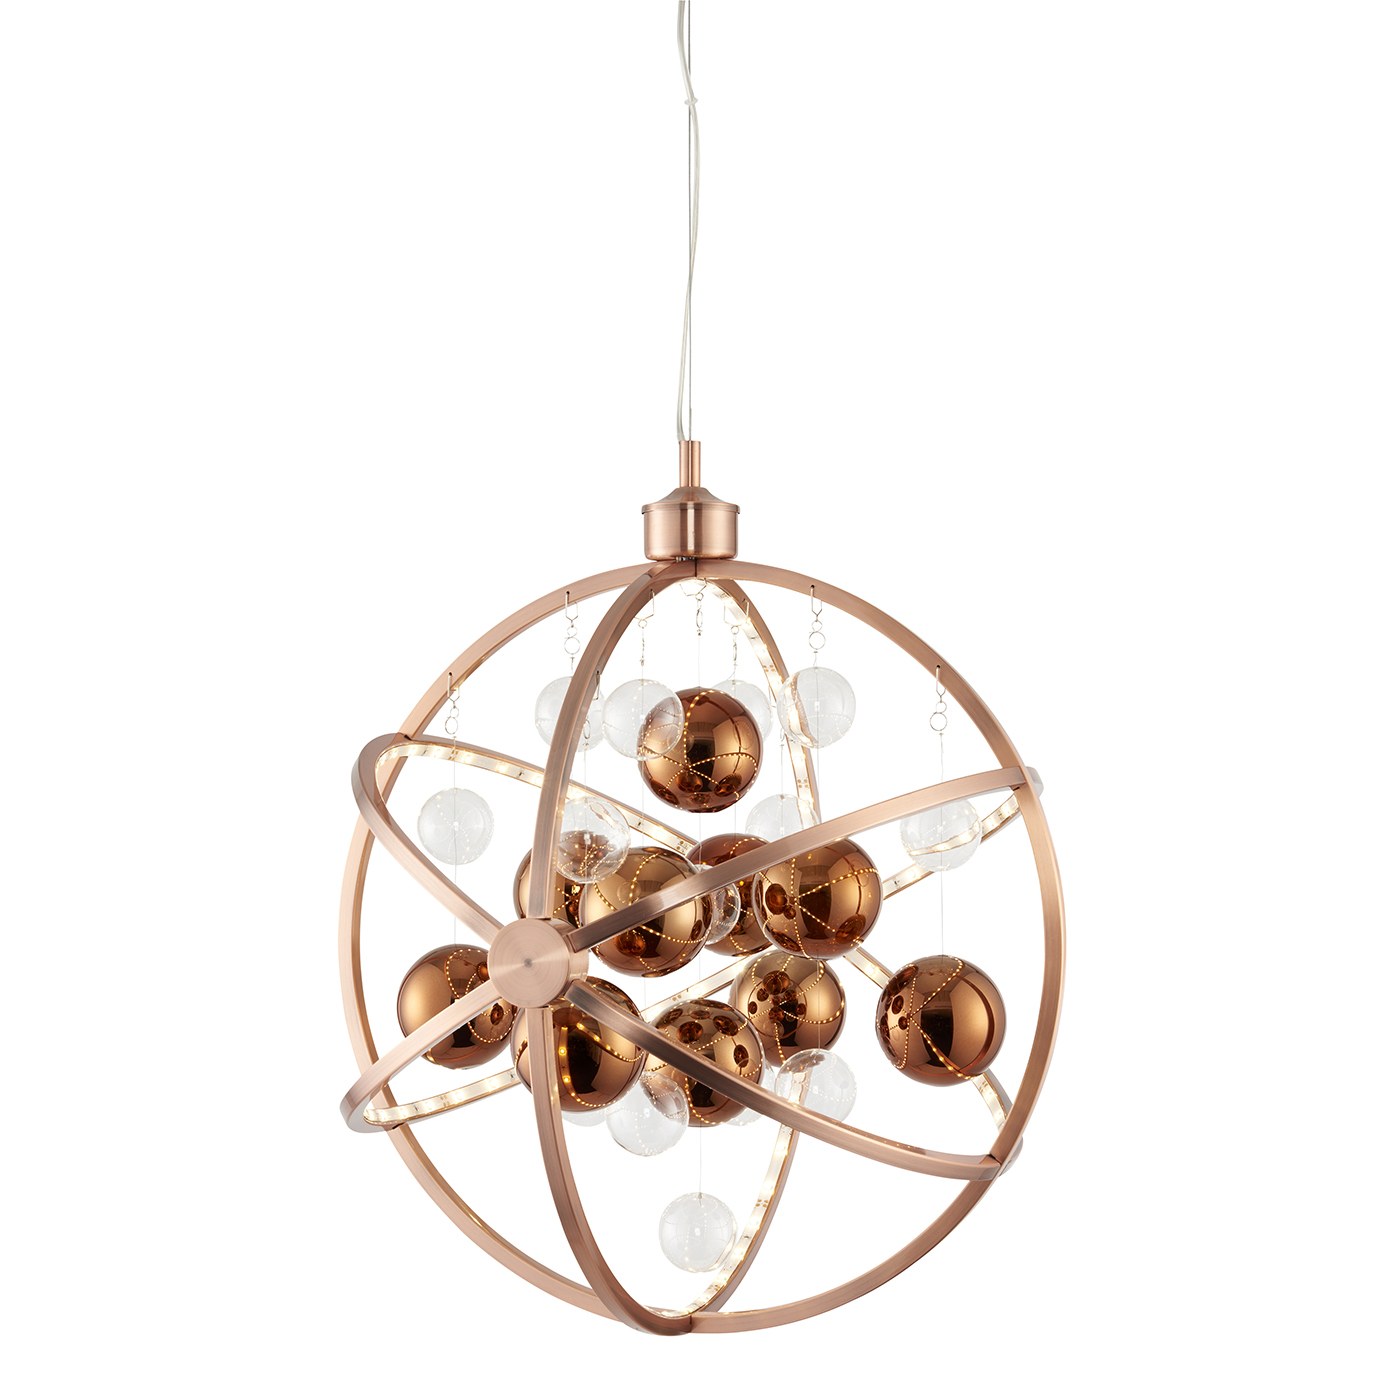 Endon Muni 480mm pendant 10W Copper plate with clear & copper balls